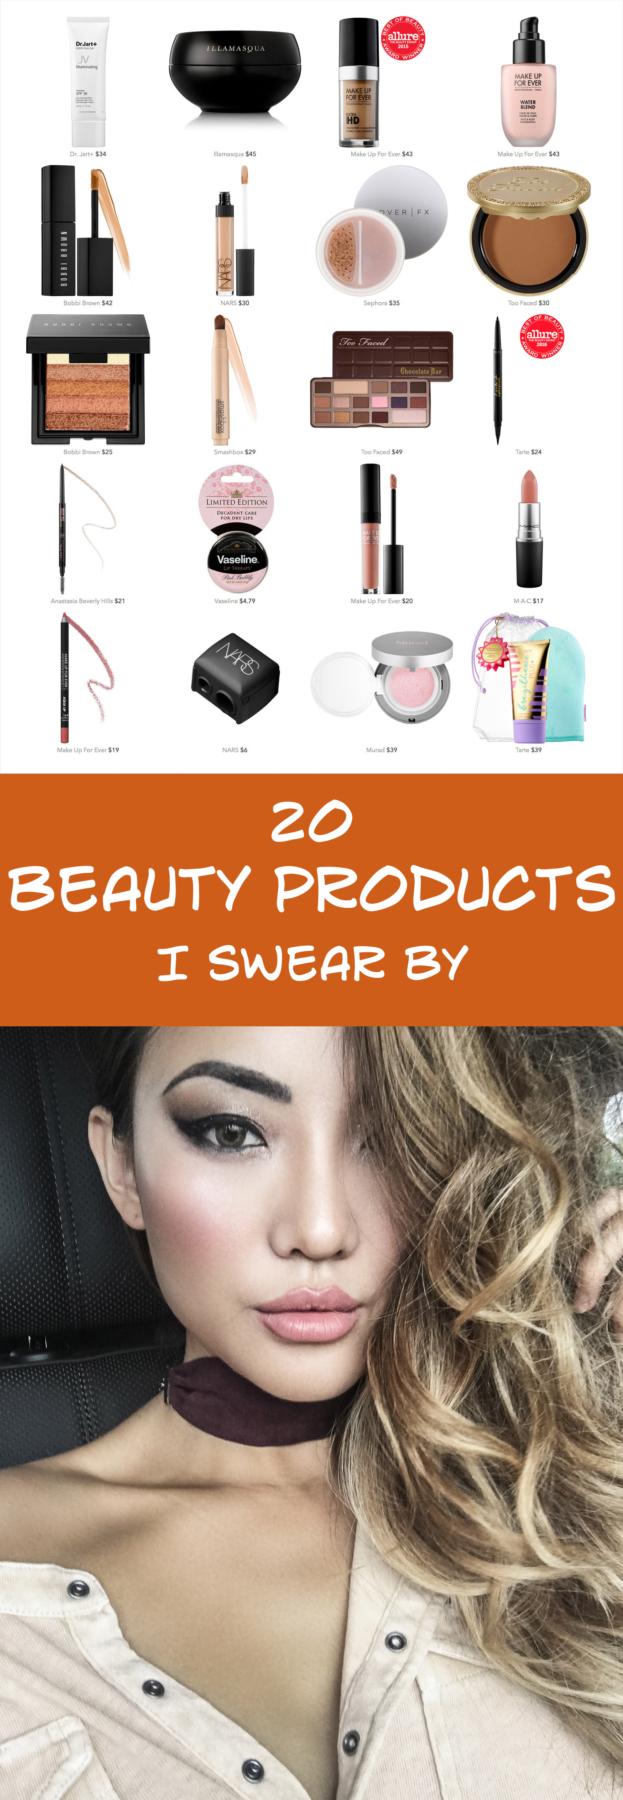 20 Beauty Products I Swear By // NotJessFashion.com